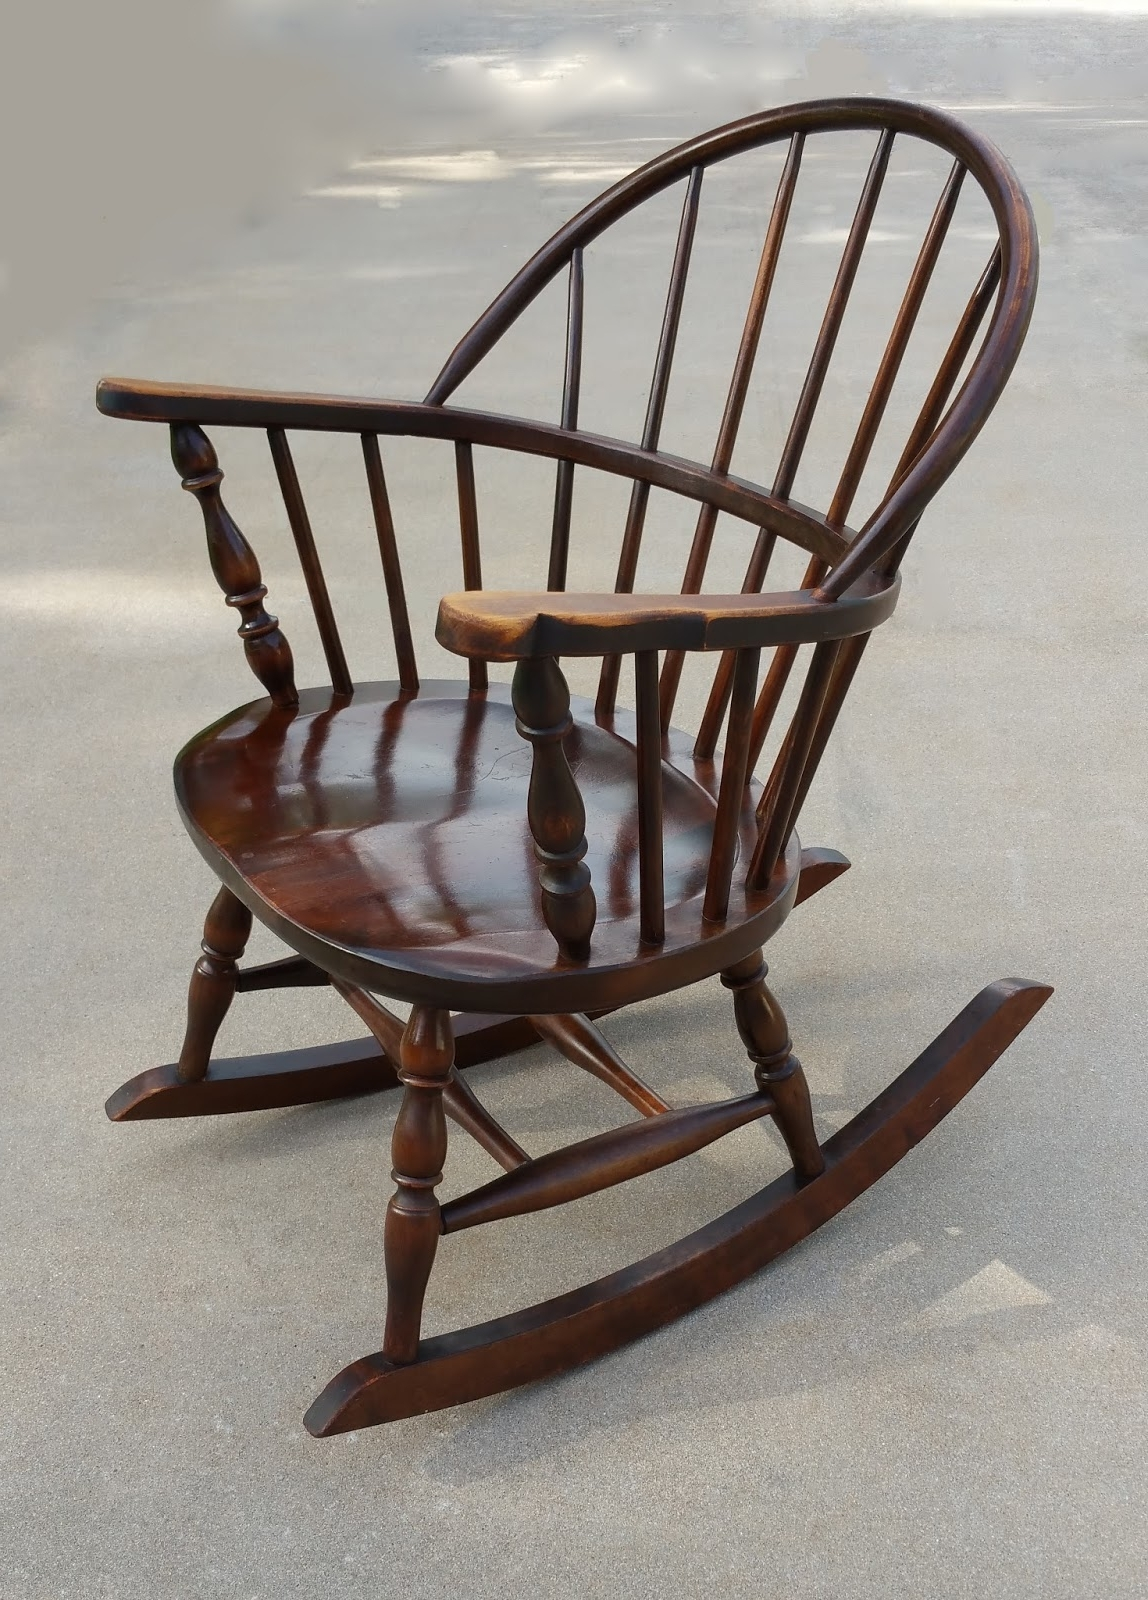 Antique Rocking Chairs Pertaining To Popular Mendlbarr: Rocking Chairs Every Home Should Have At Least One! (View 4 of 15)